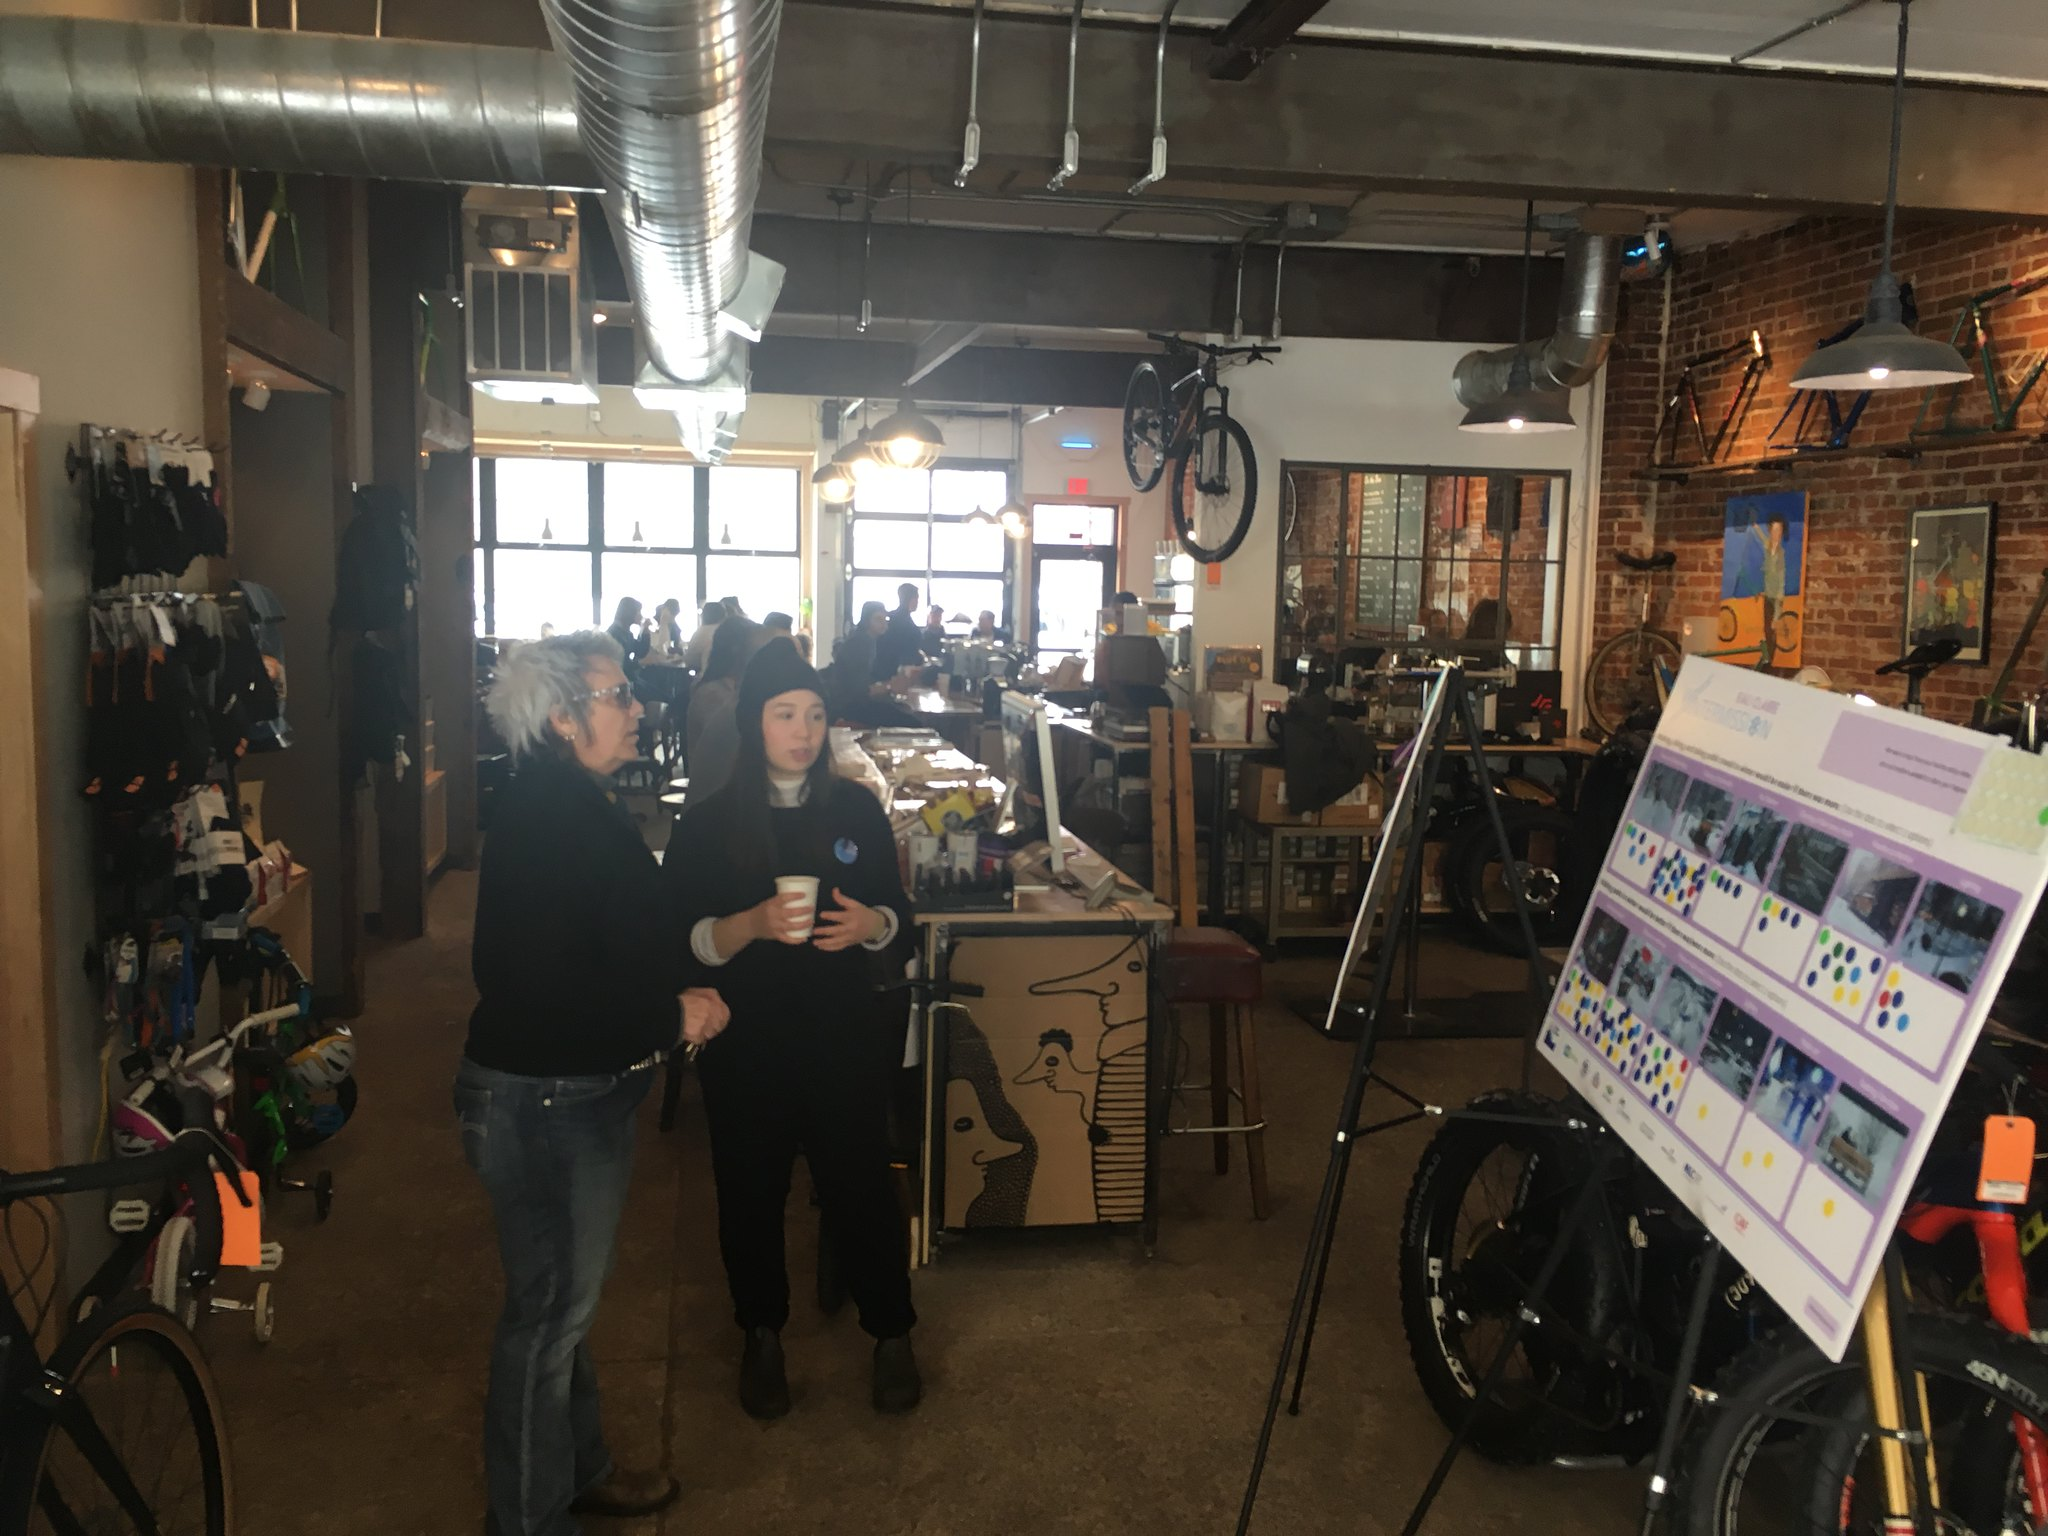 Twopeople in a bike shop looking at a poster board